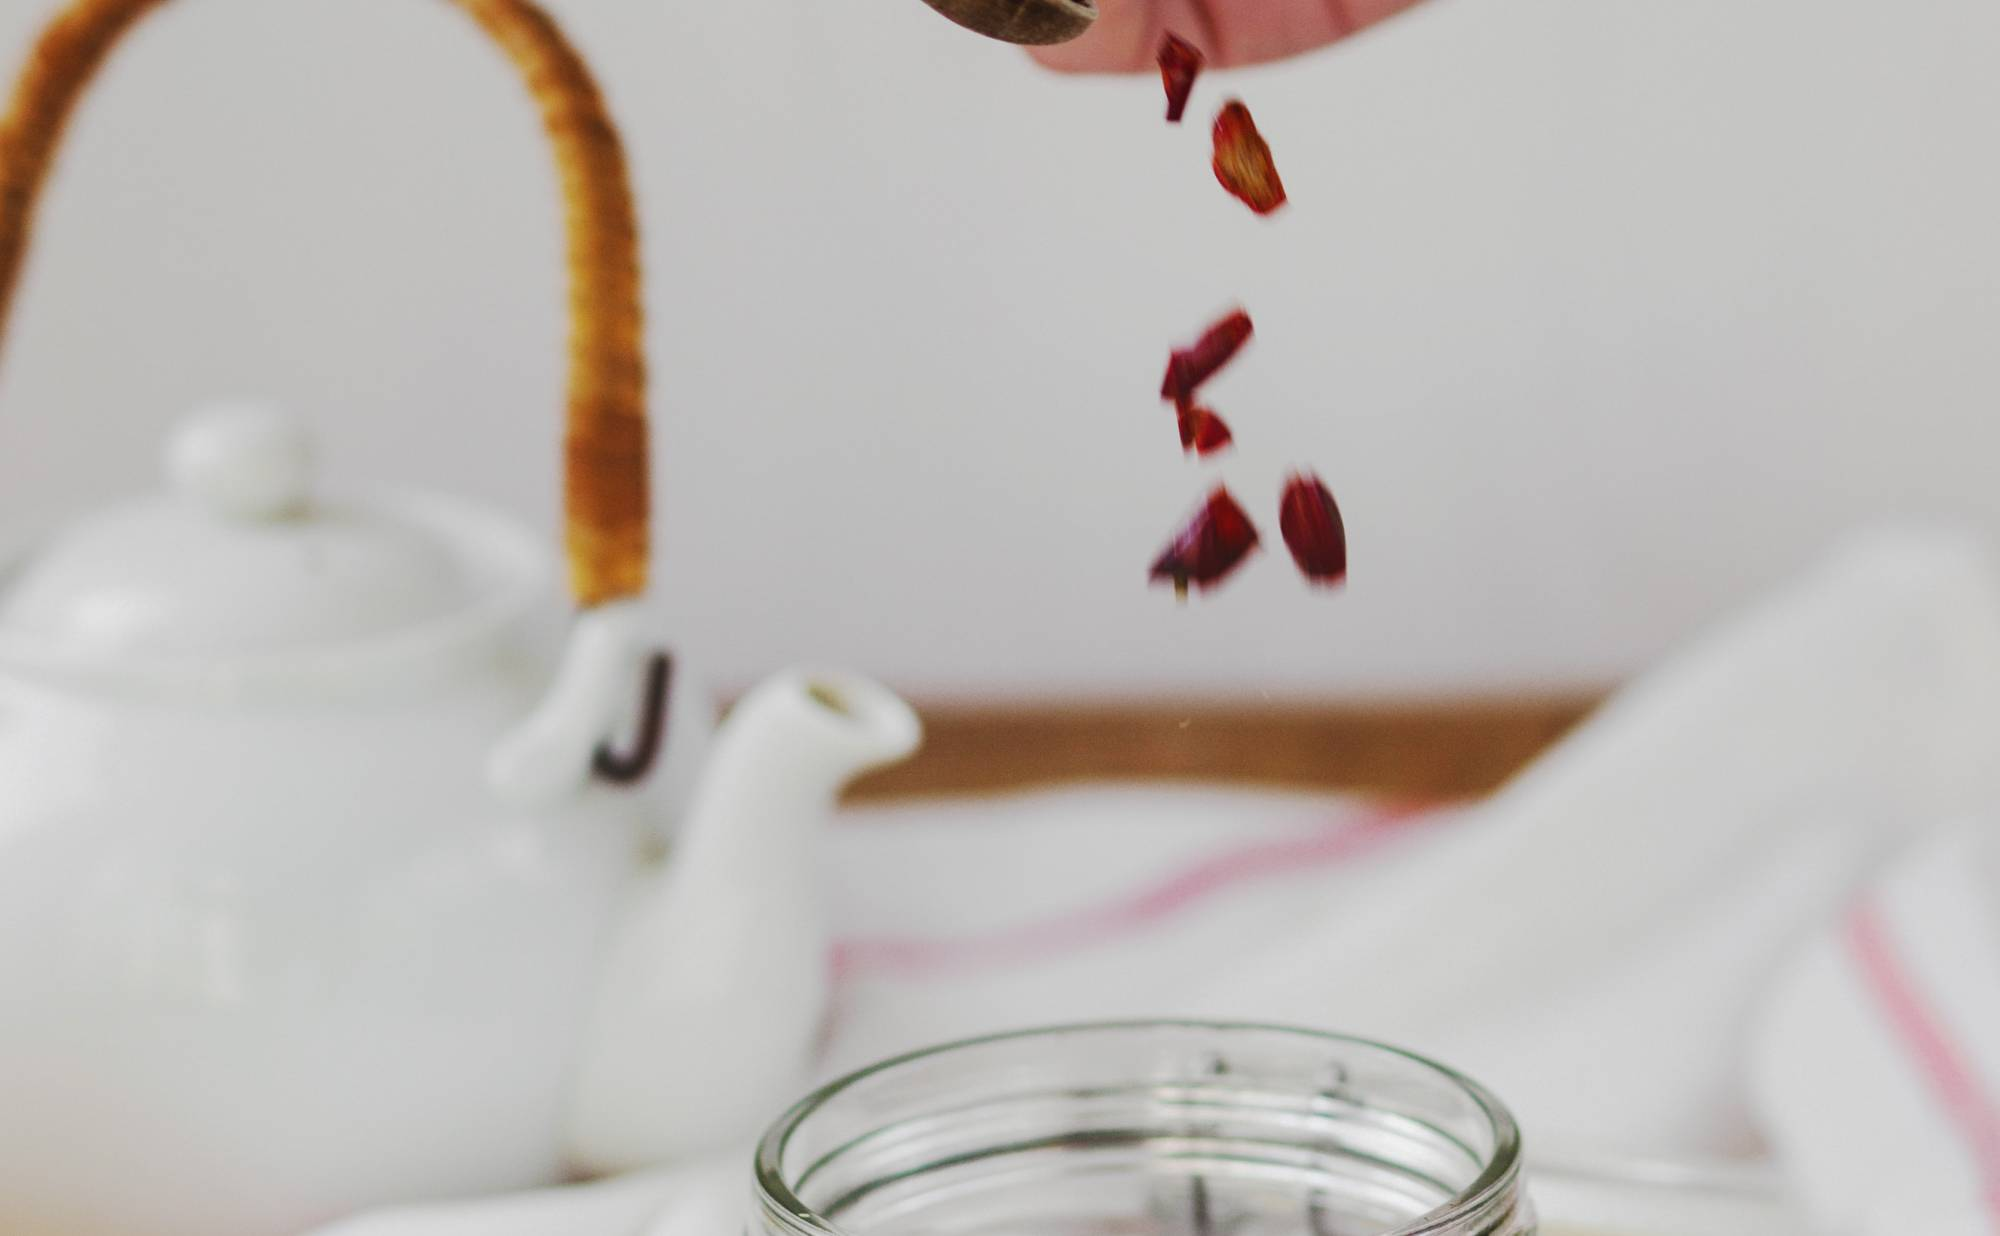 Person pouring spice into jar